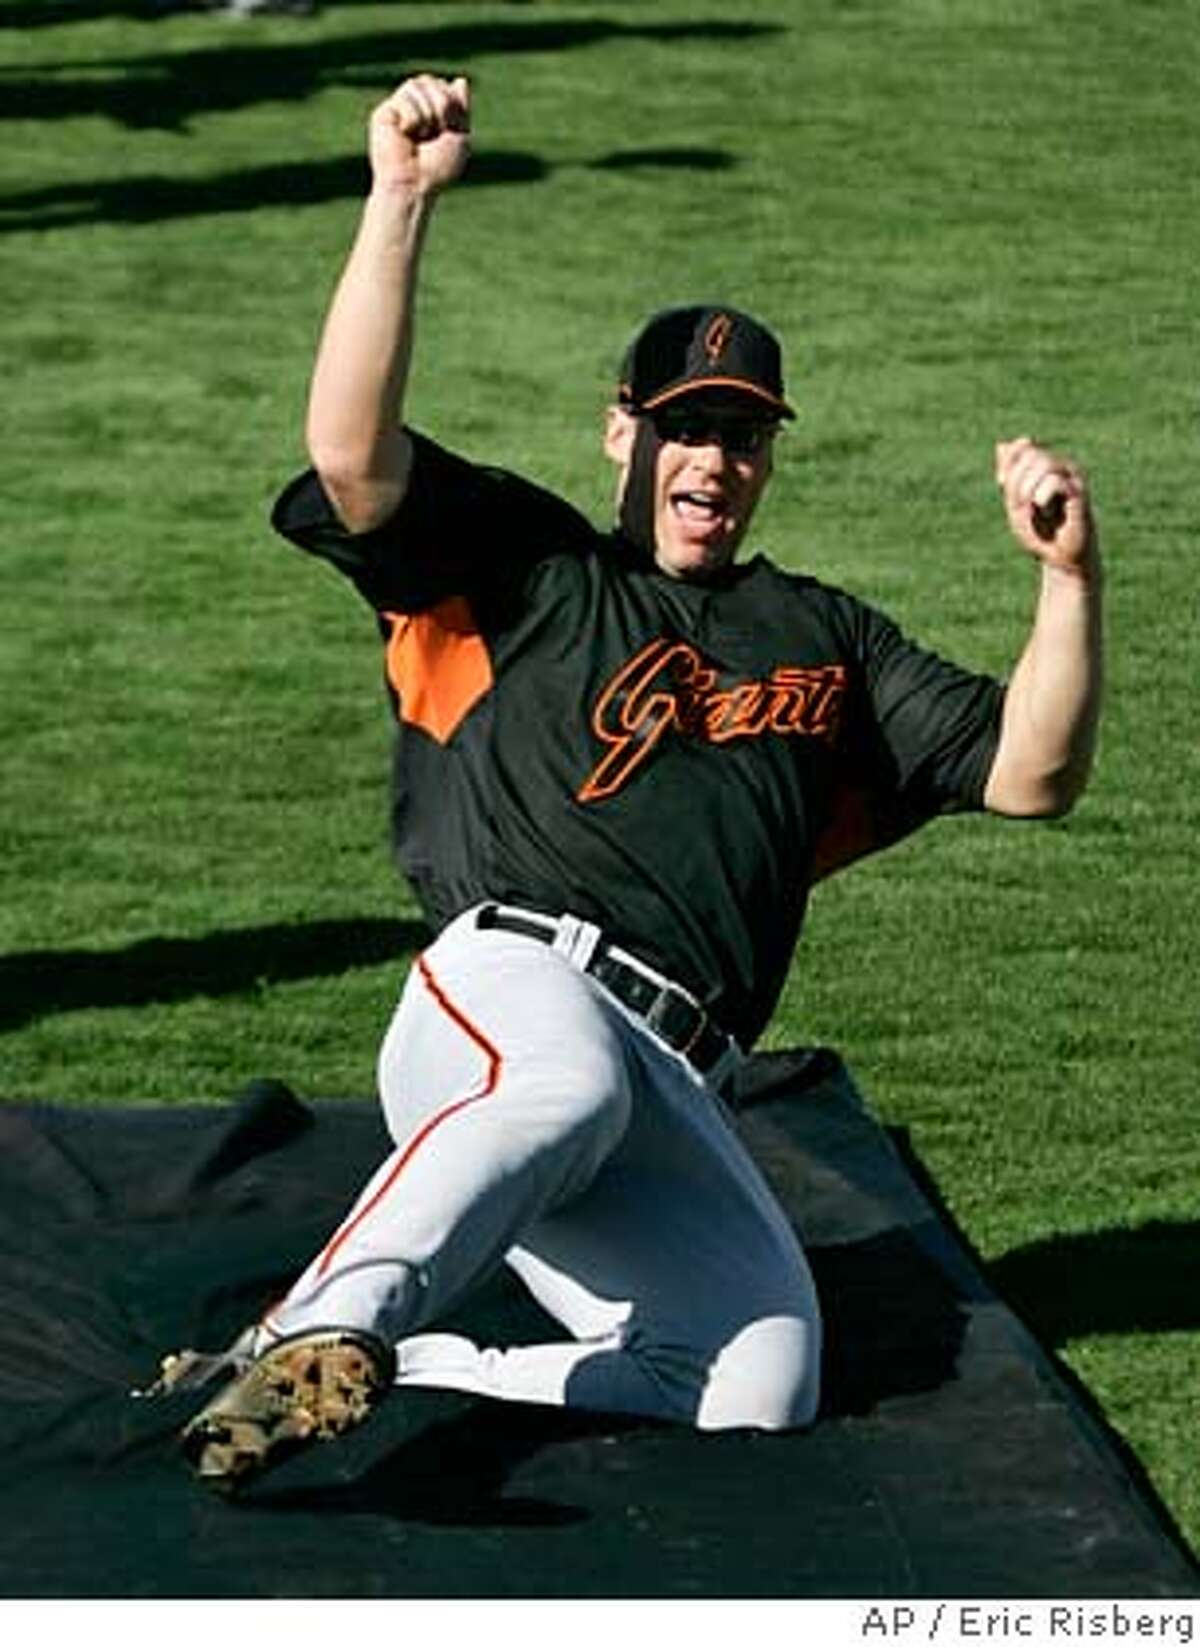 San Francisco Giants outfielder Todd Linden goes sliding onto a mat in the outfield during an exercise at their spring training baseball workout in Scottsdale, Ariz., Monday, Feb. 26, 2007. (AP Photo/Eric Risberg)